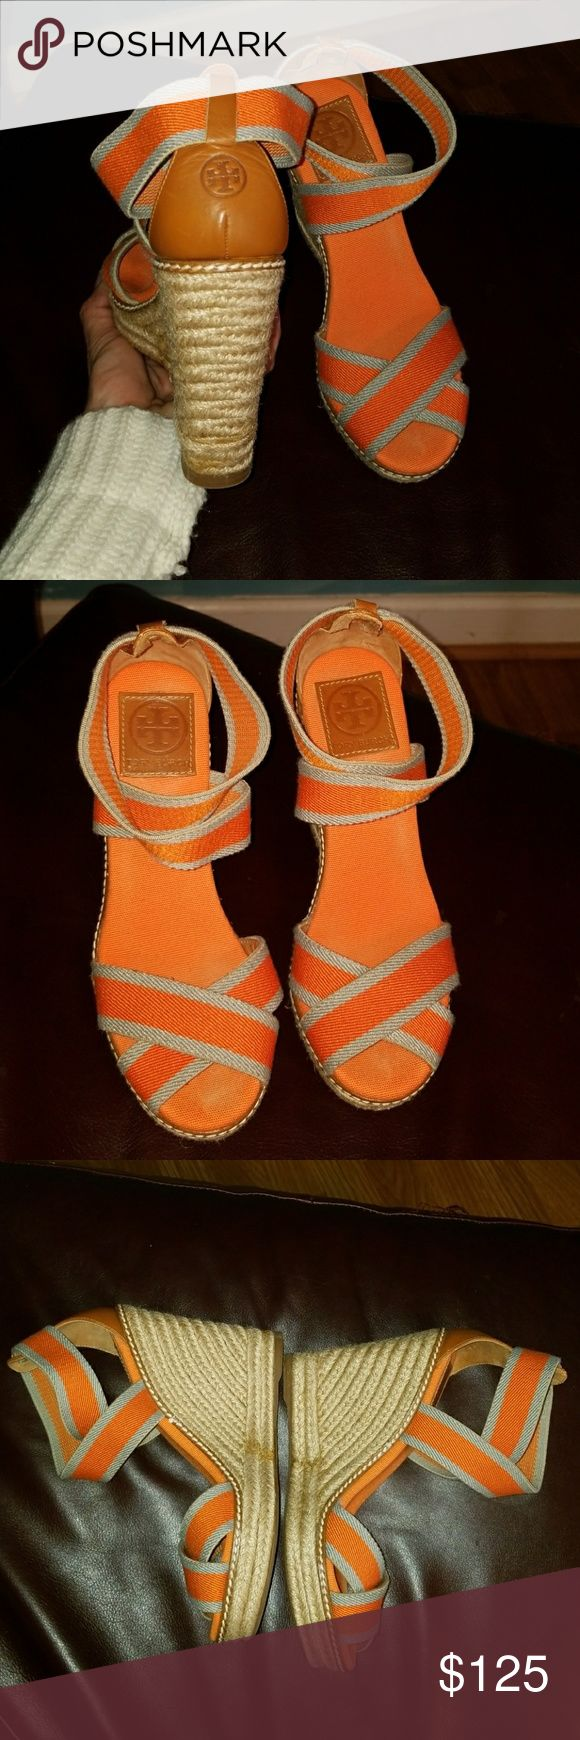 TORY BURCH ESPADRILLE STRAPY WEDGES ORANGE/GRAY 7 This is an amazing pair of AUTHENTIC TORY BURCH espadrille strap wedge heel shoes. Ladies 7M. Gray/Orange in color with Brown Leather Trim. Super cute logo on back of heel. Worn once for a couple hours they are basically brand new! 4.5 wedge height. Tory Burch Shoes Wedges